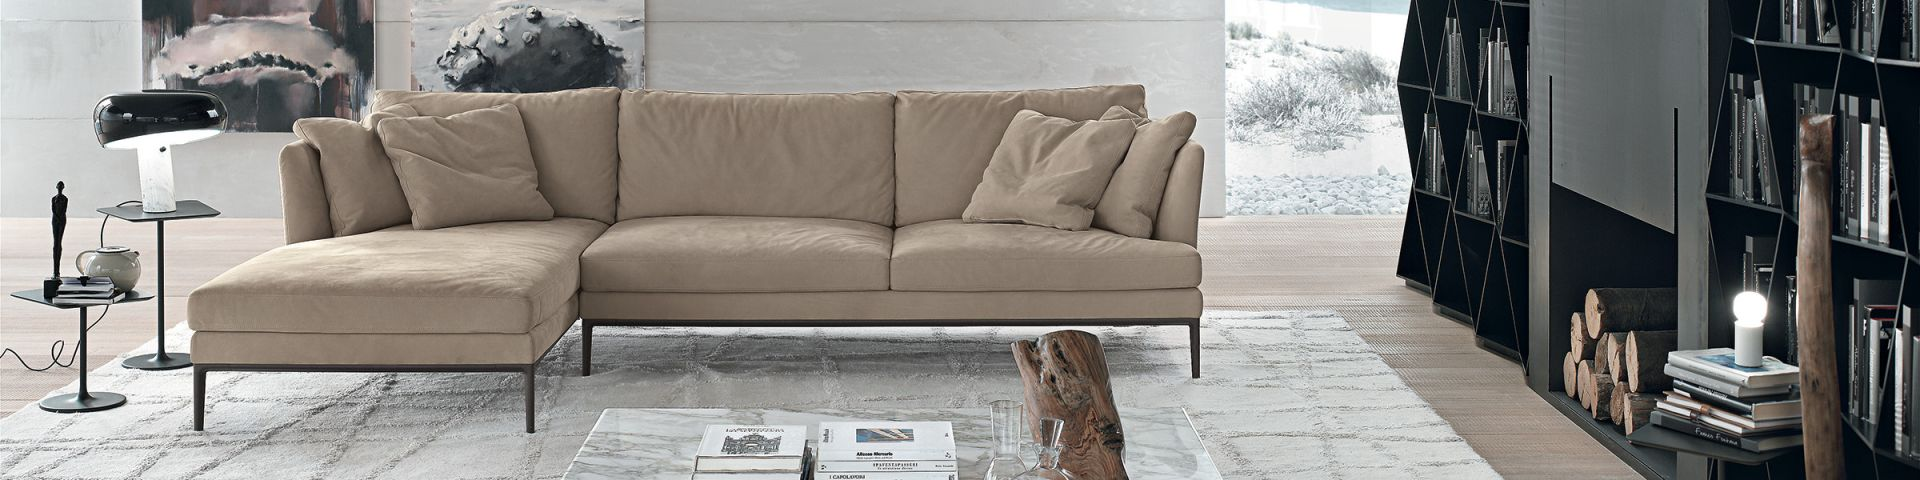 sectional sofas nyc showroom ciao sofa designs modern sectionals for contemporay living cliffyoung new york